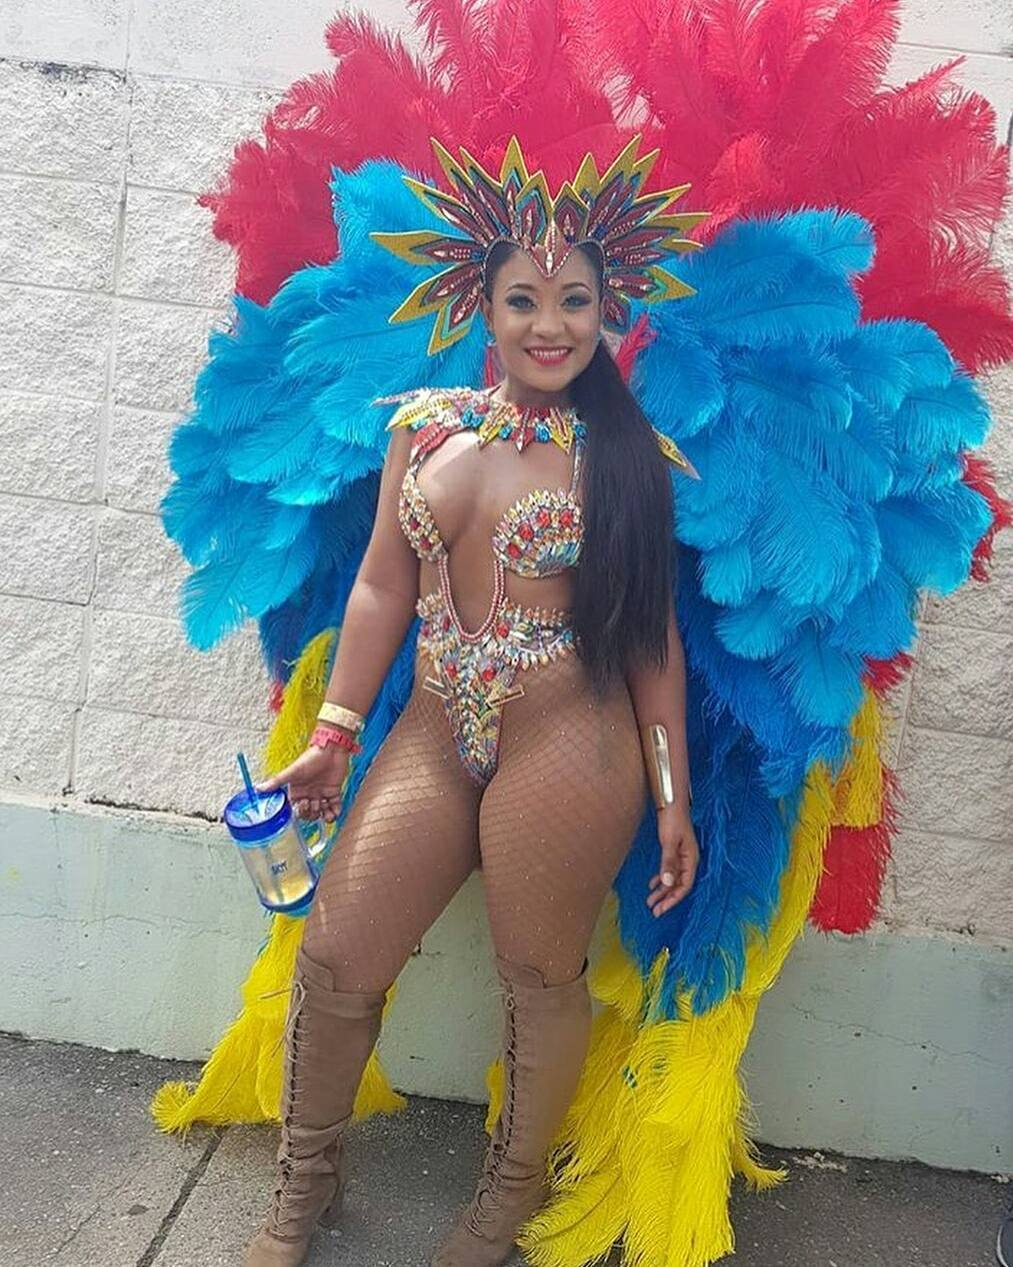 blazing-hot-costumes-trinidad-tobago-carnival-see-nigerias-dj-cuppy-looking-sizzling-hot